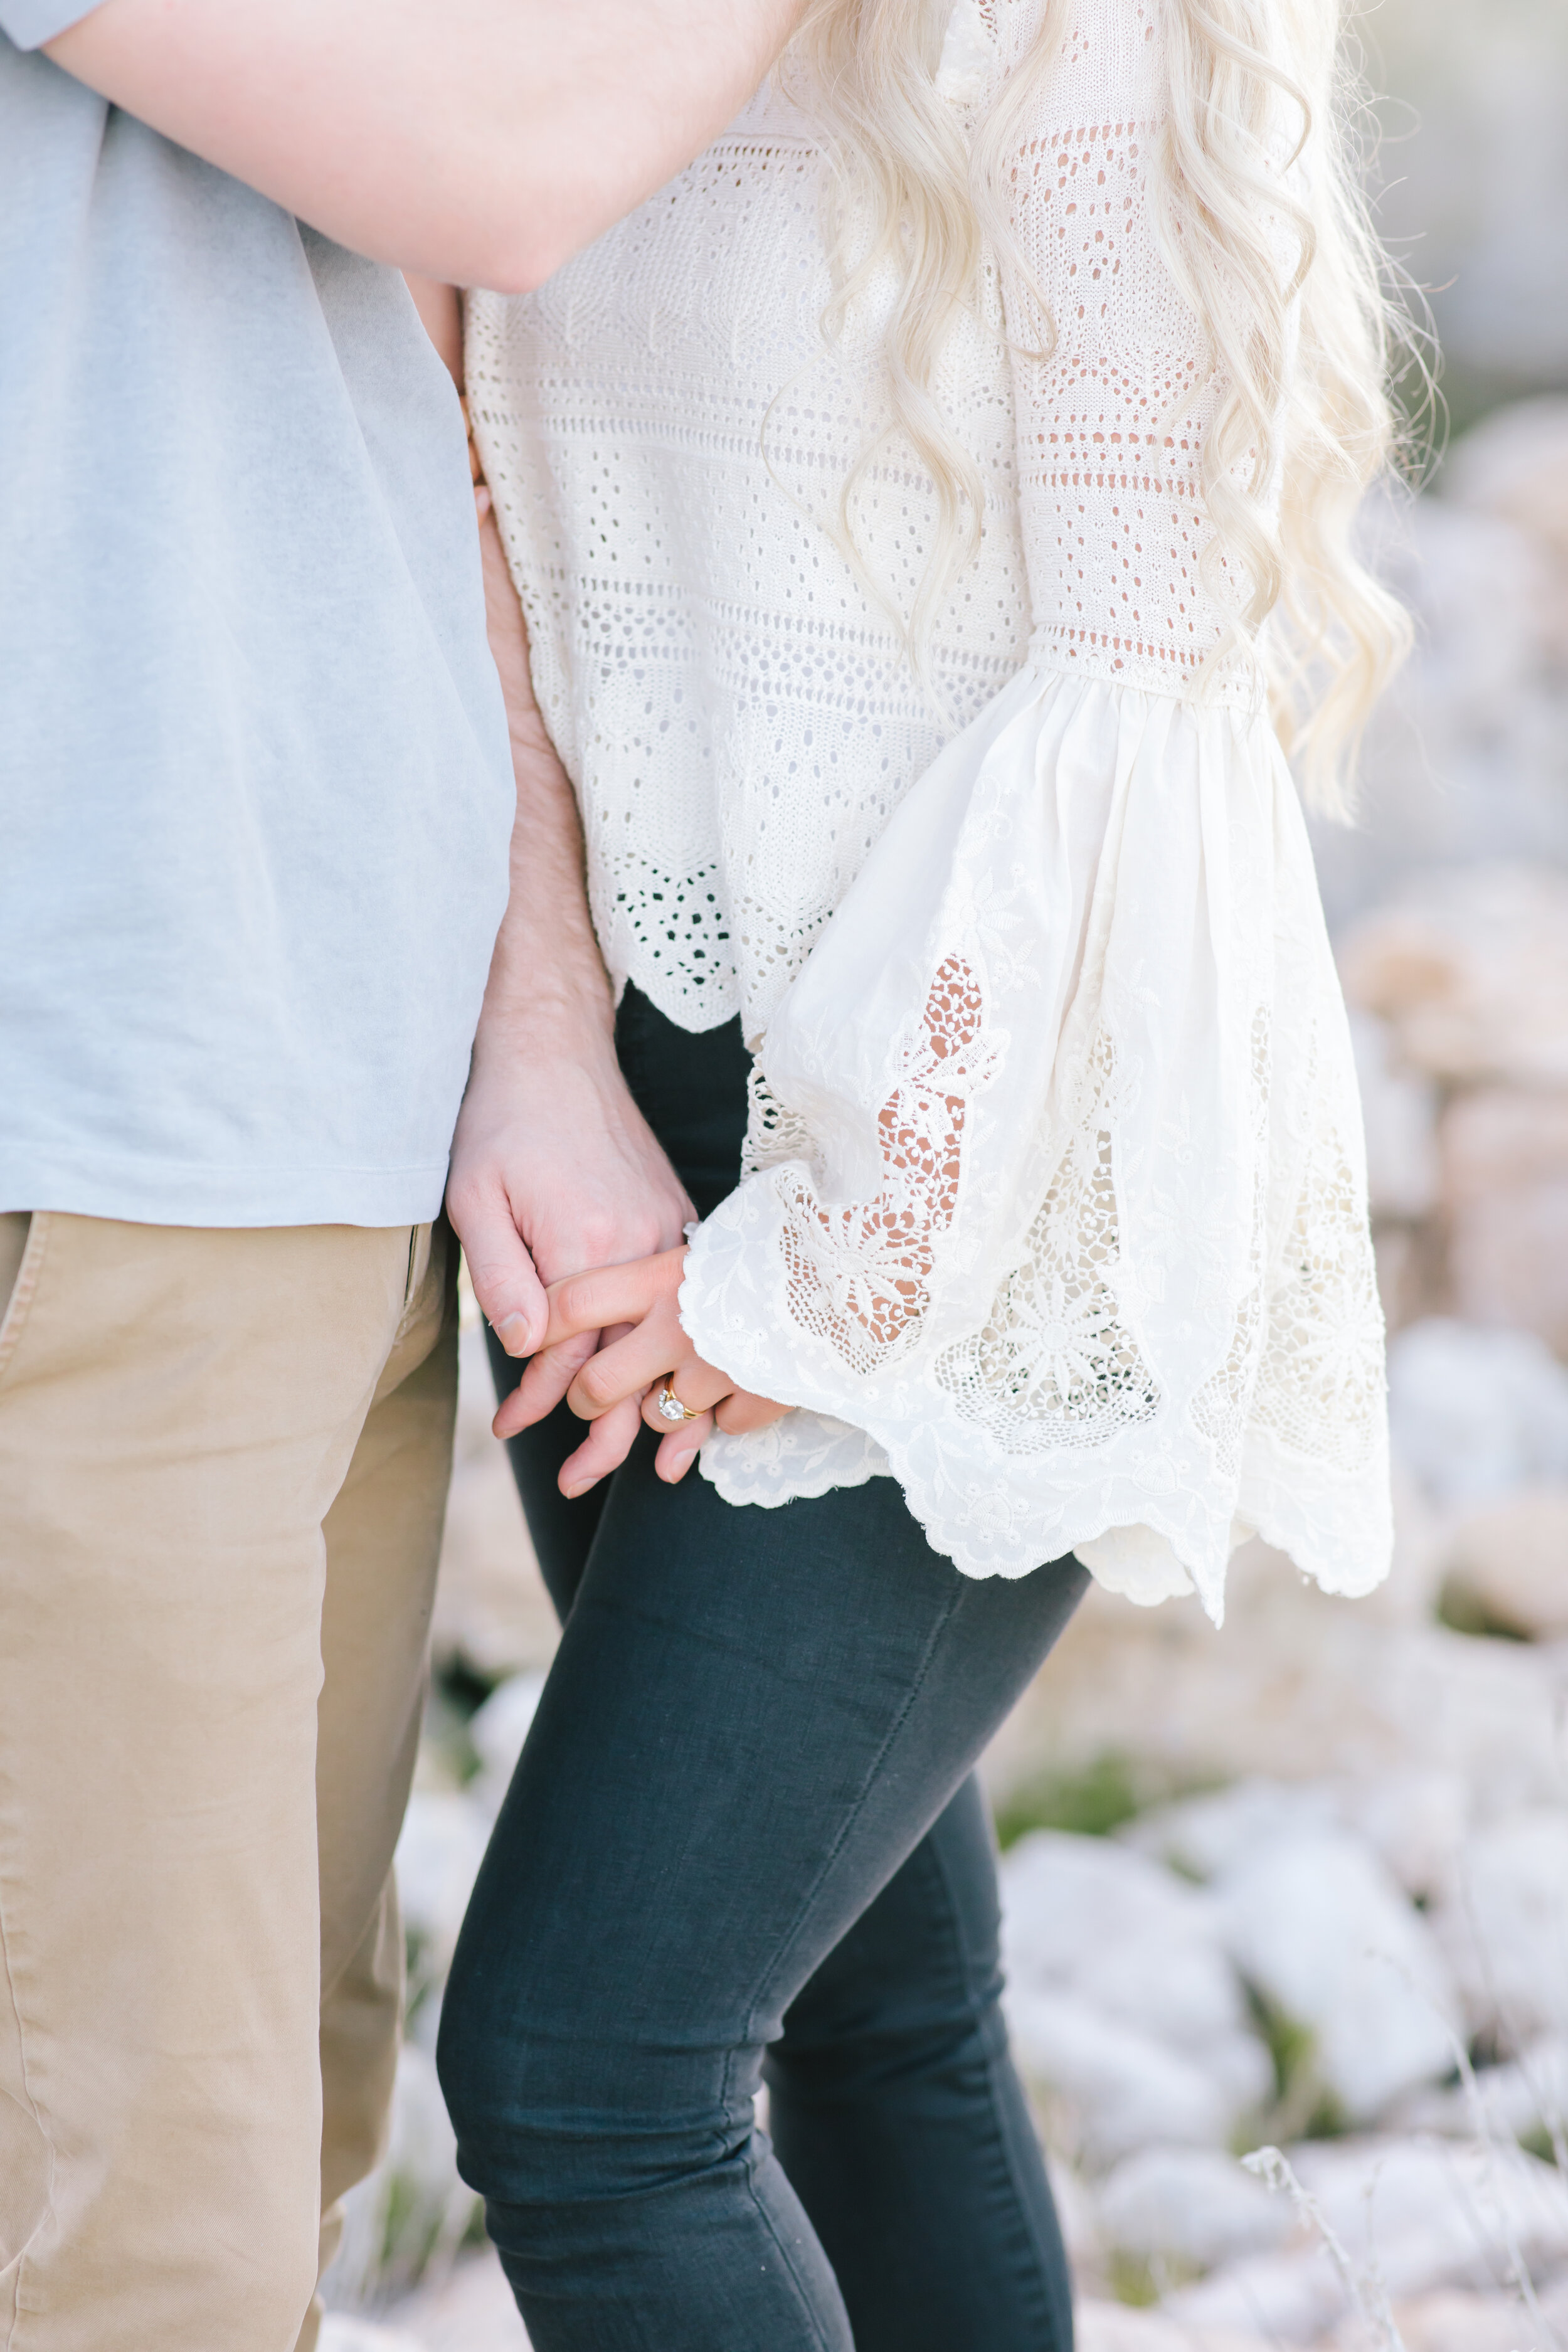 close up holding hands natural hand positioning inspiration wedding ring simple intimate naturally show the ring pose inspiration elegant bright casual couple outfit inspiration close up engagement photo shoot goals utah couple professional photographer perfect lighting #antelopeisland #couplekissing #engagementoutfitinspo #locationinspo #romantic #outside #engagementposes #engagementideas #weddingring